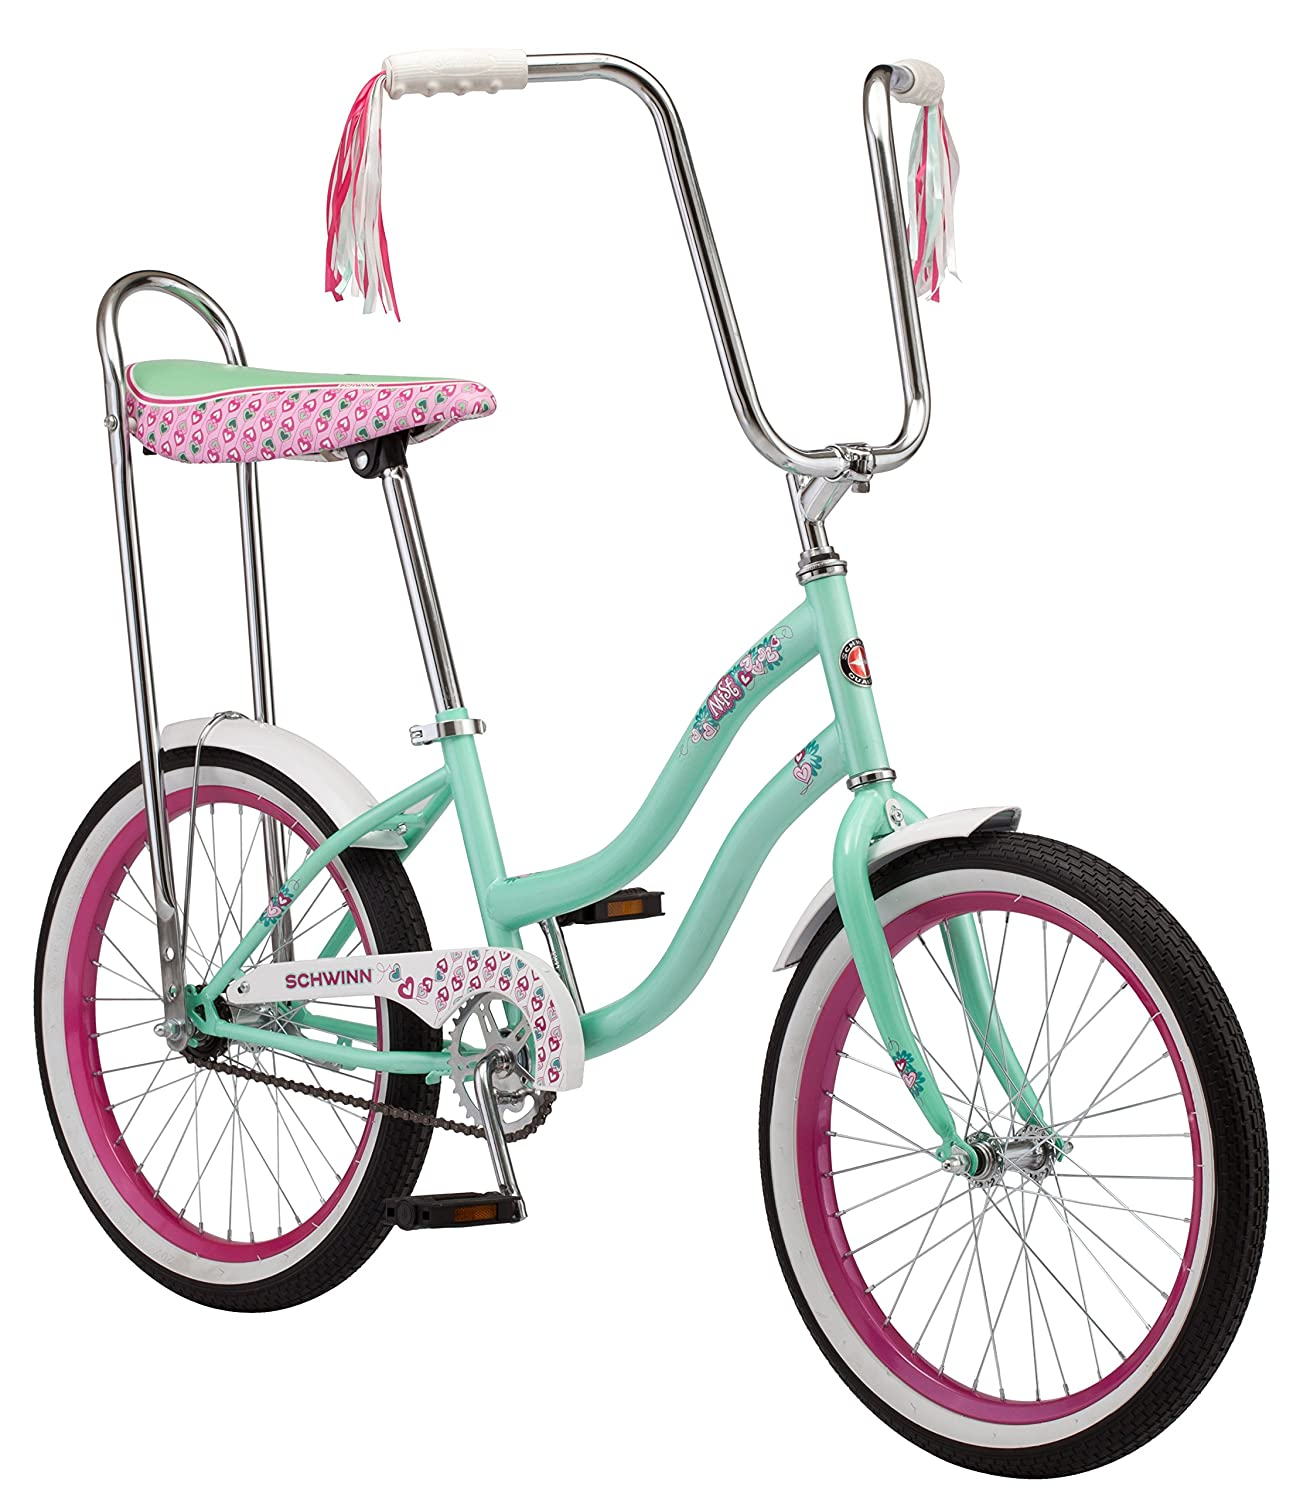 Schwinn Girl's Mist Polo Bike, 20-Inch, Mint Pacific Cycle Inc. S2367B